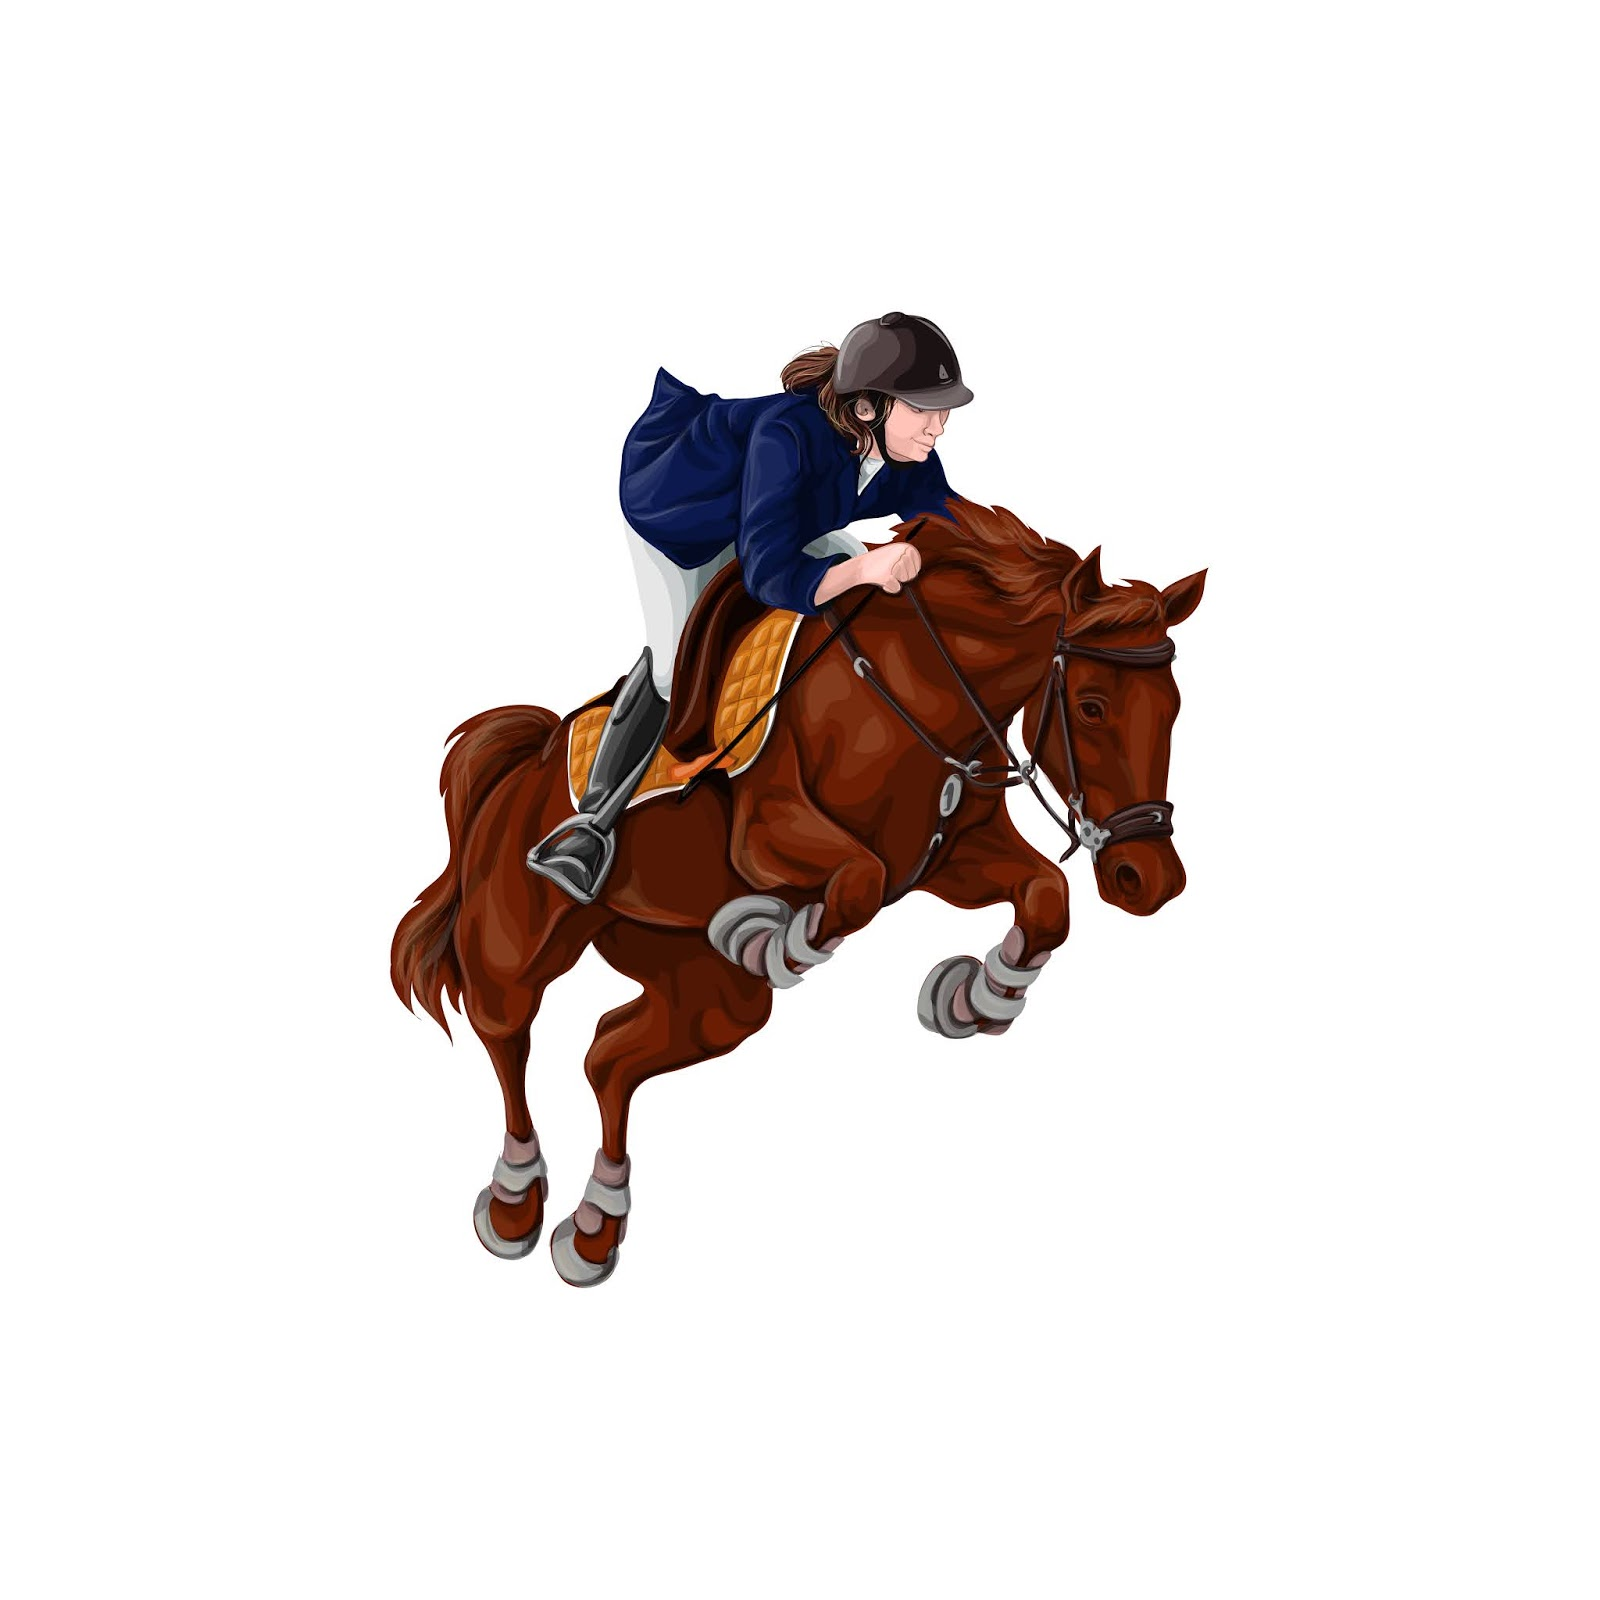 Woman Girl Riding Horses Vector Illustration Isolated	 Free Download Vector CDR, AI, EPS and PNG Formats